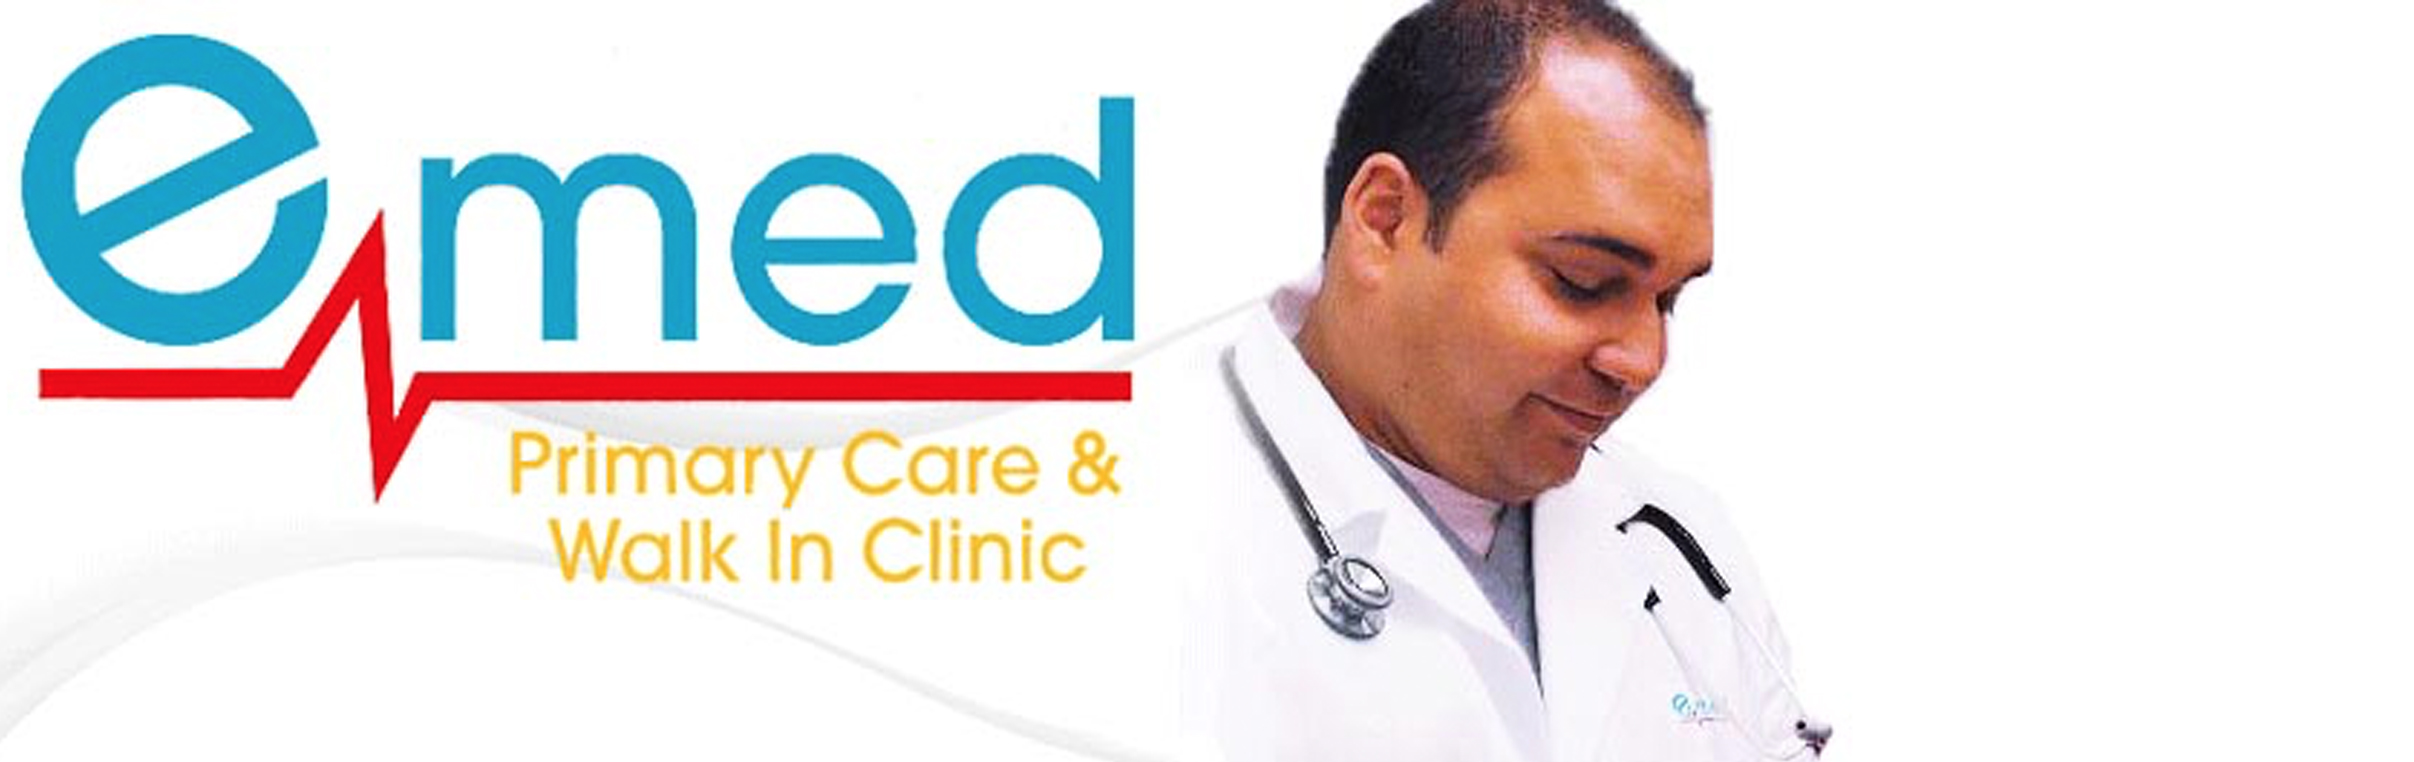 primary care clinic